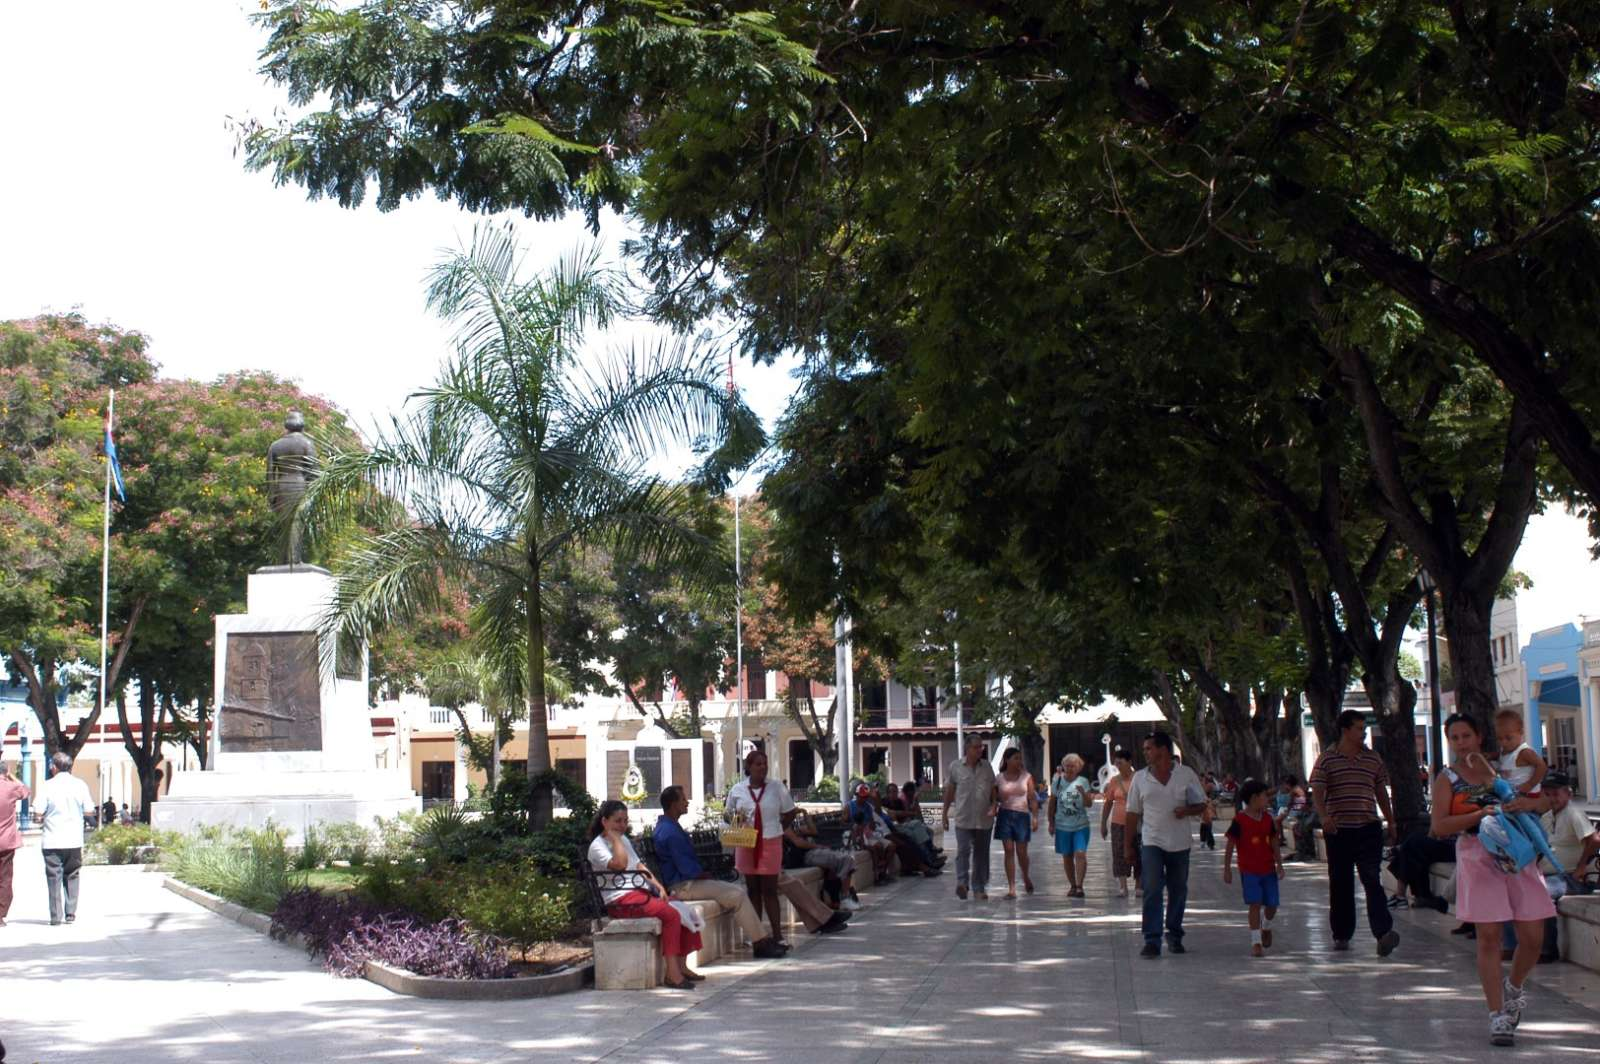 Locals in Bayamo's central Parque